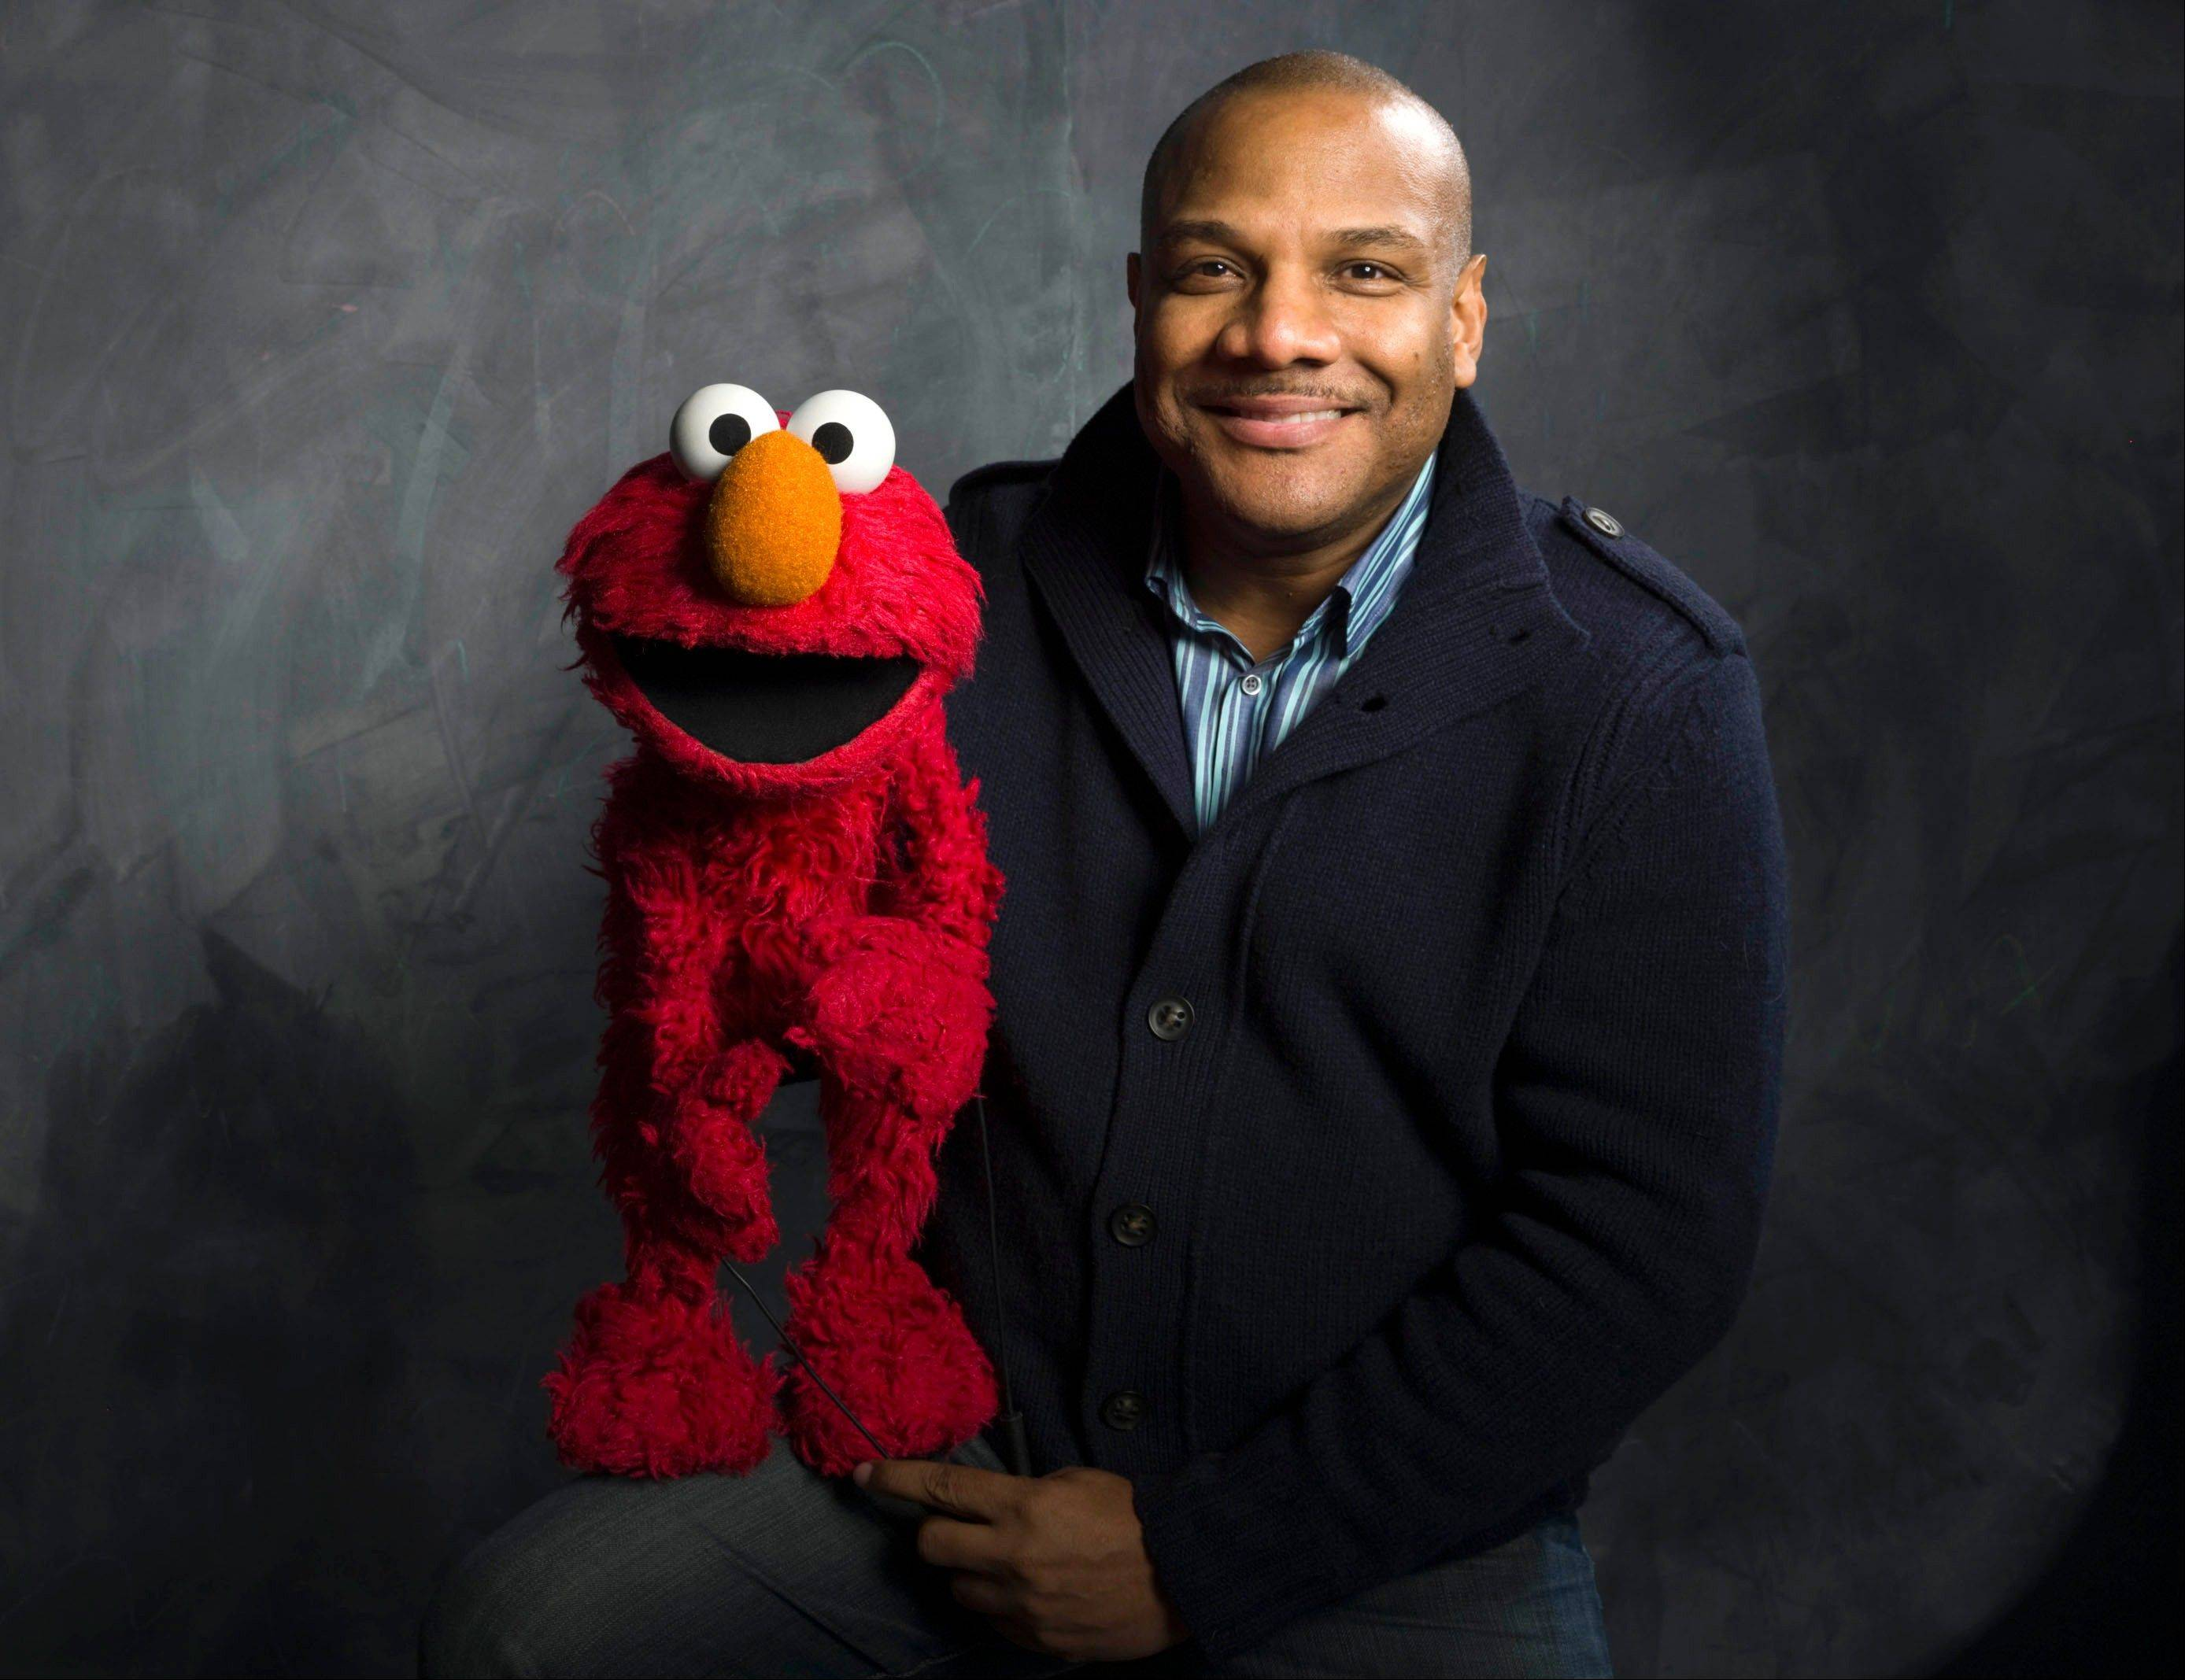 Sesame Workshop says Elmo puppeteer Kevin Clash has resigned from �Sesame Street� in the wake of allegations that he had sex with an under-aged youth.